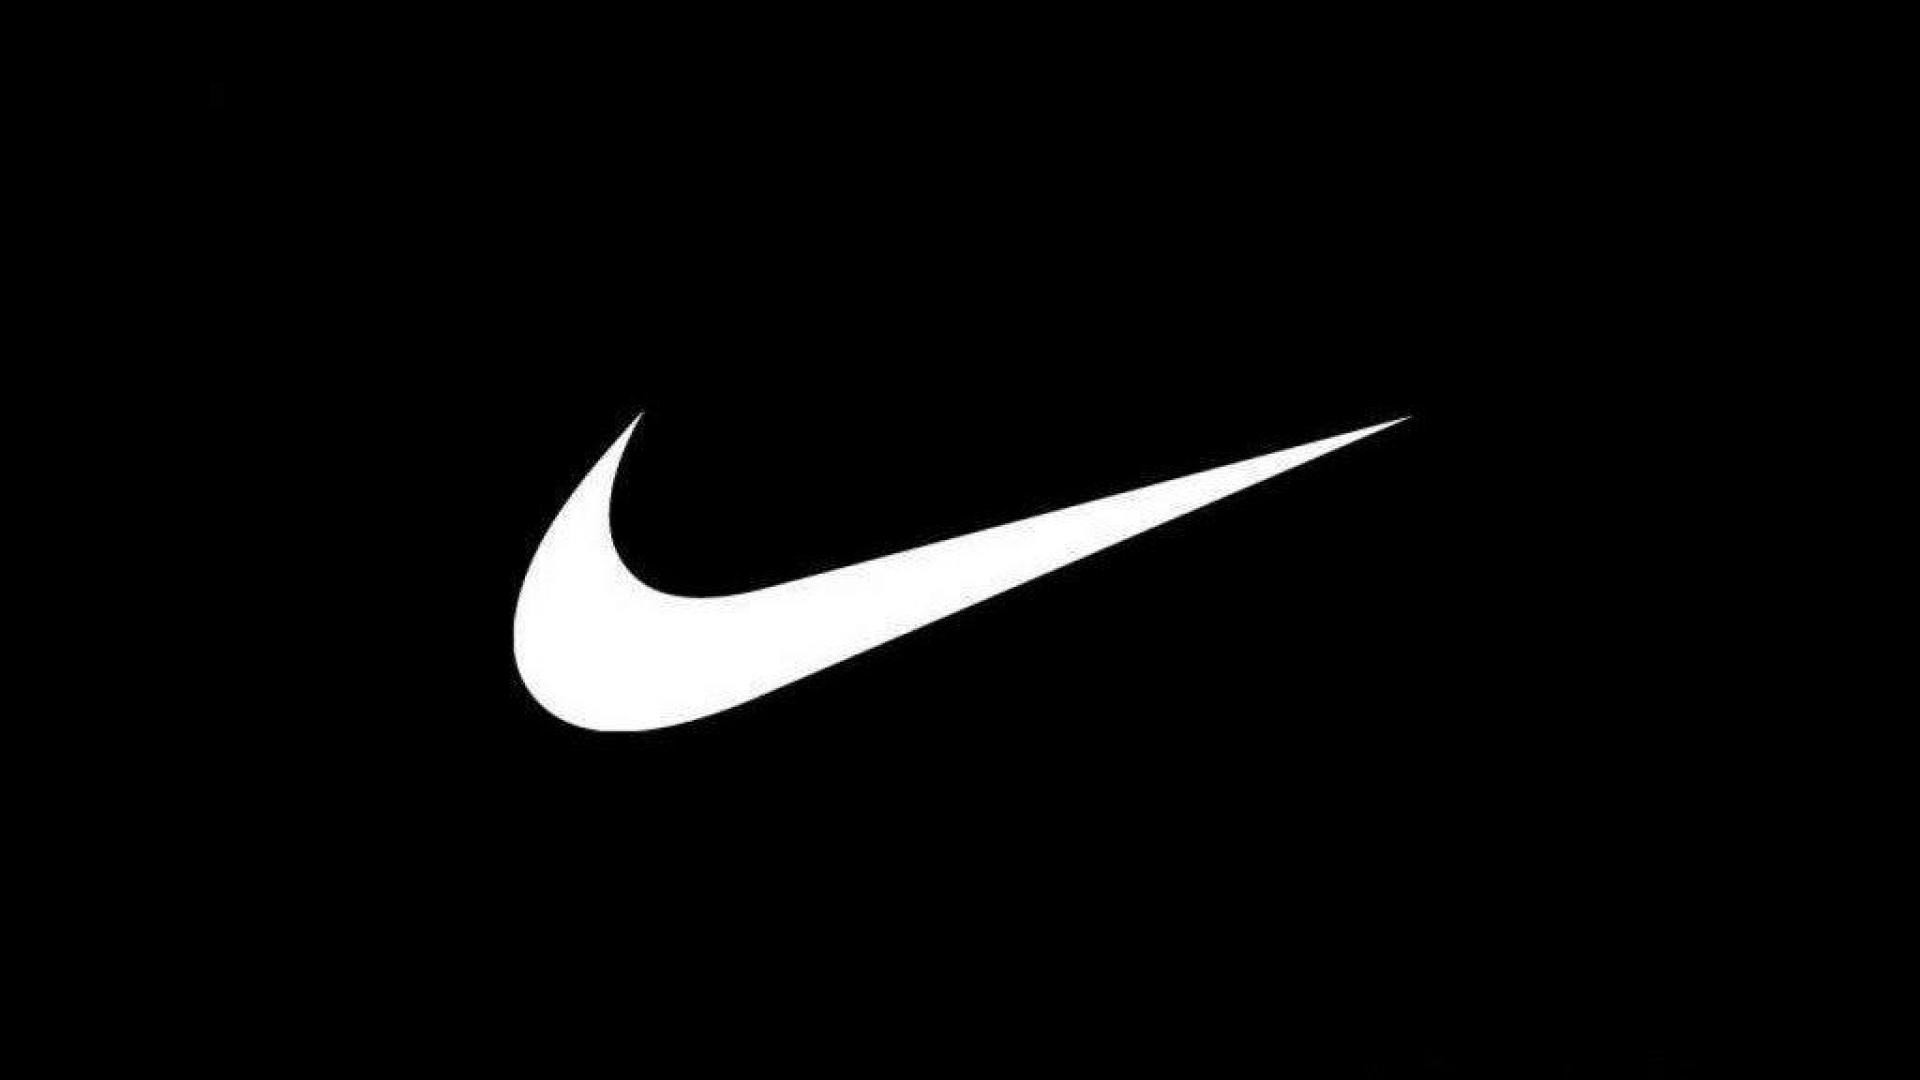 3600x2160 Nike Cool Background Hd Wallpapers High Definition Amazing Apple Mac Download Free 3600A 2160 Wallpaper HD